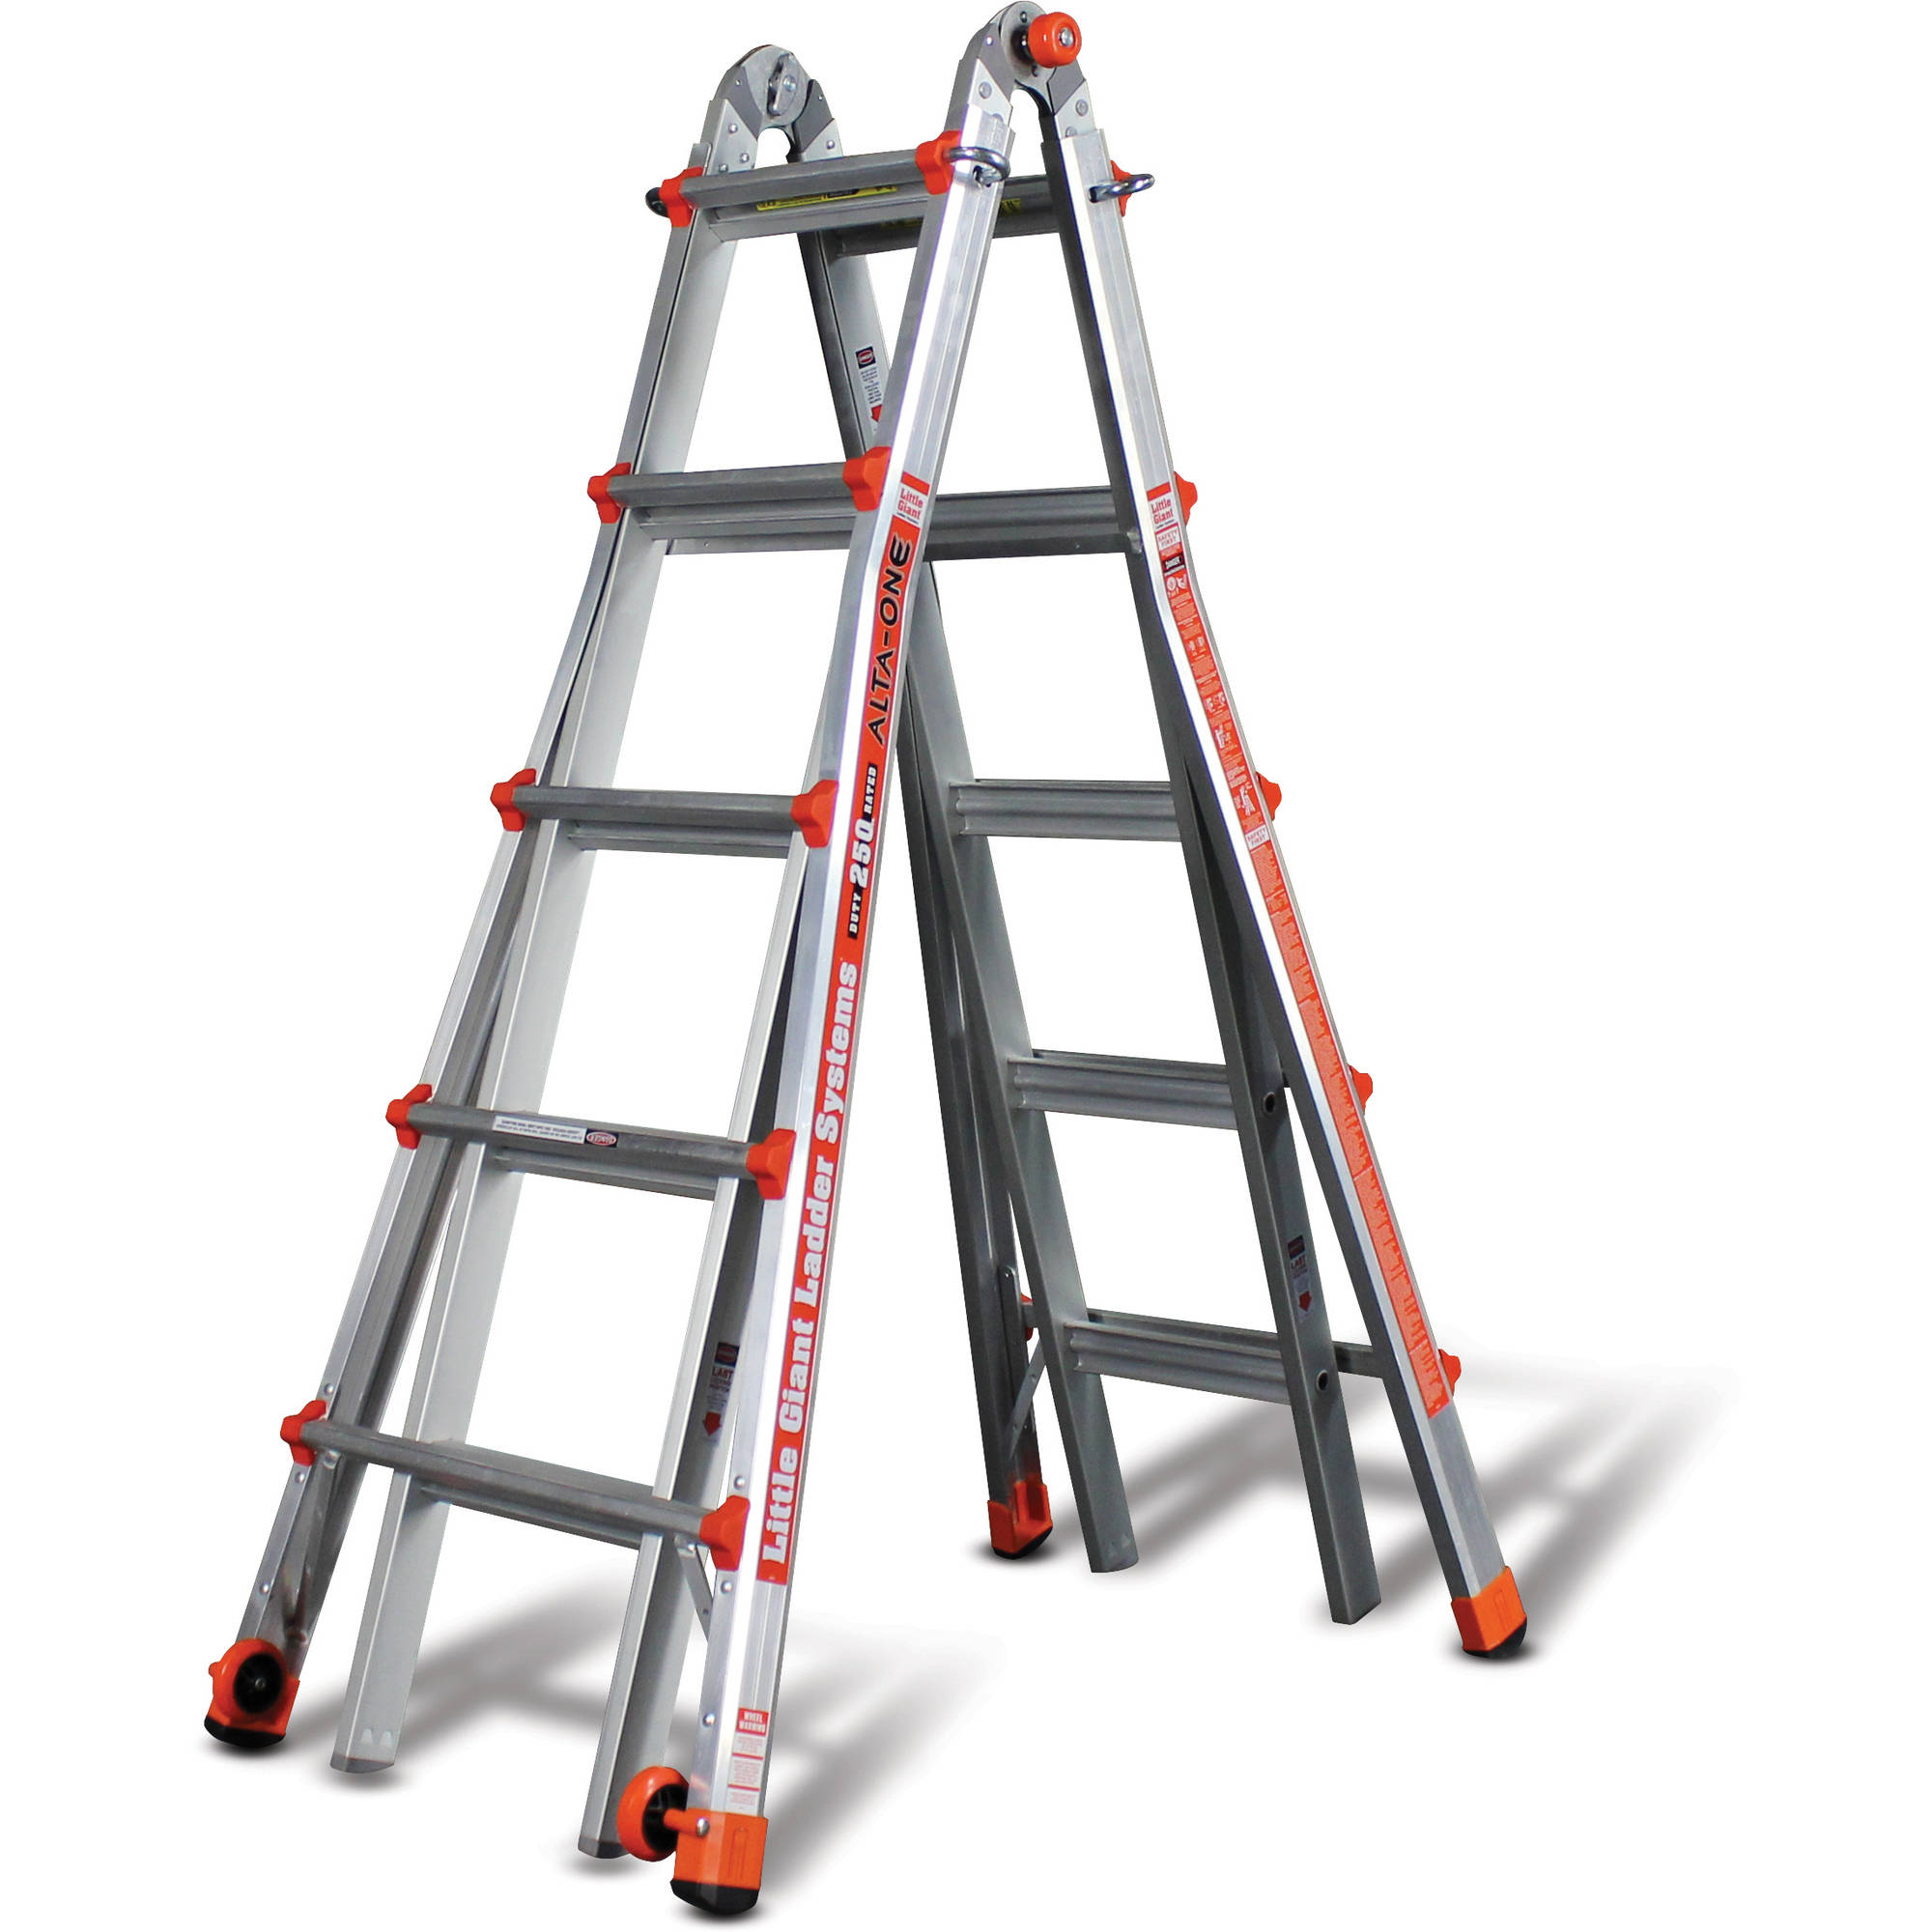 Little Giant Alta One Type 1 Model 22' Ladder